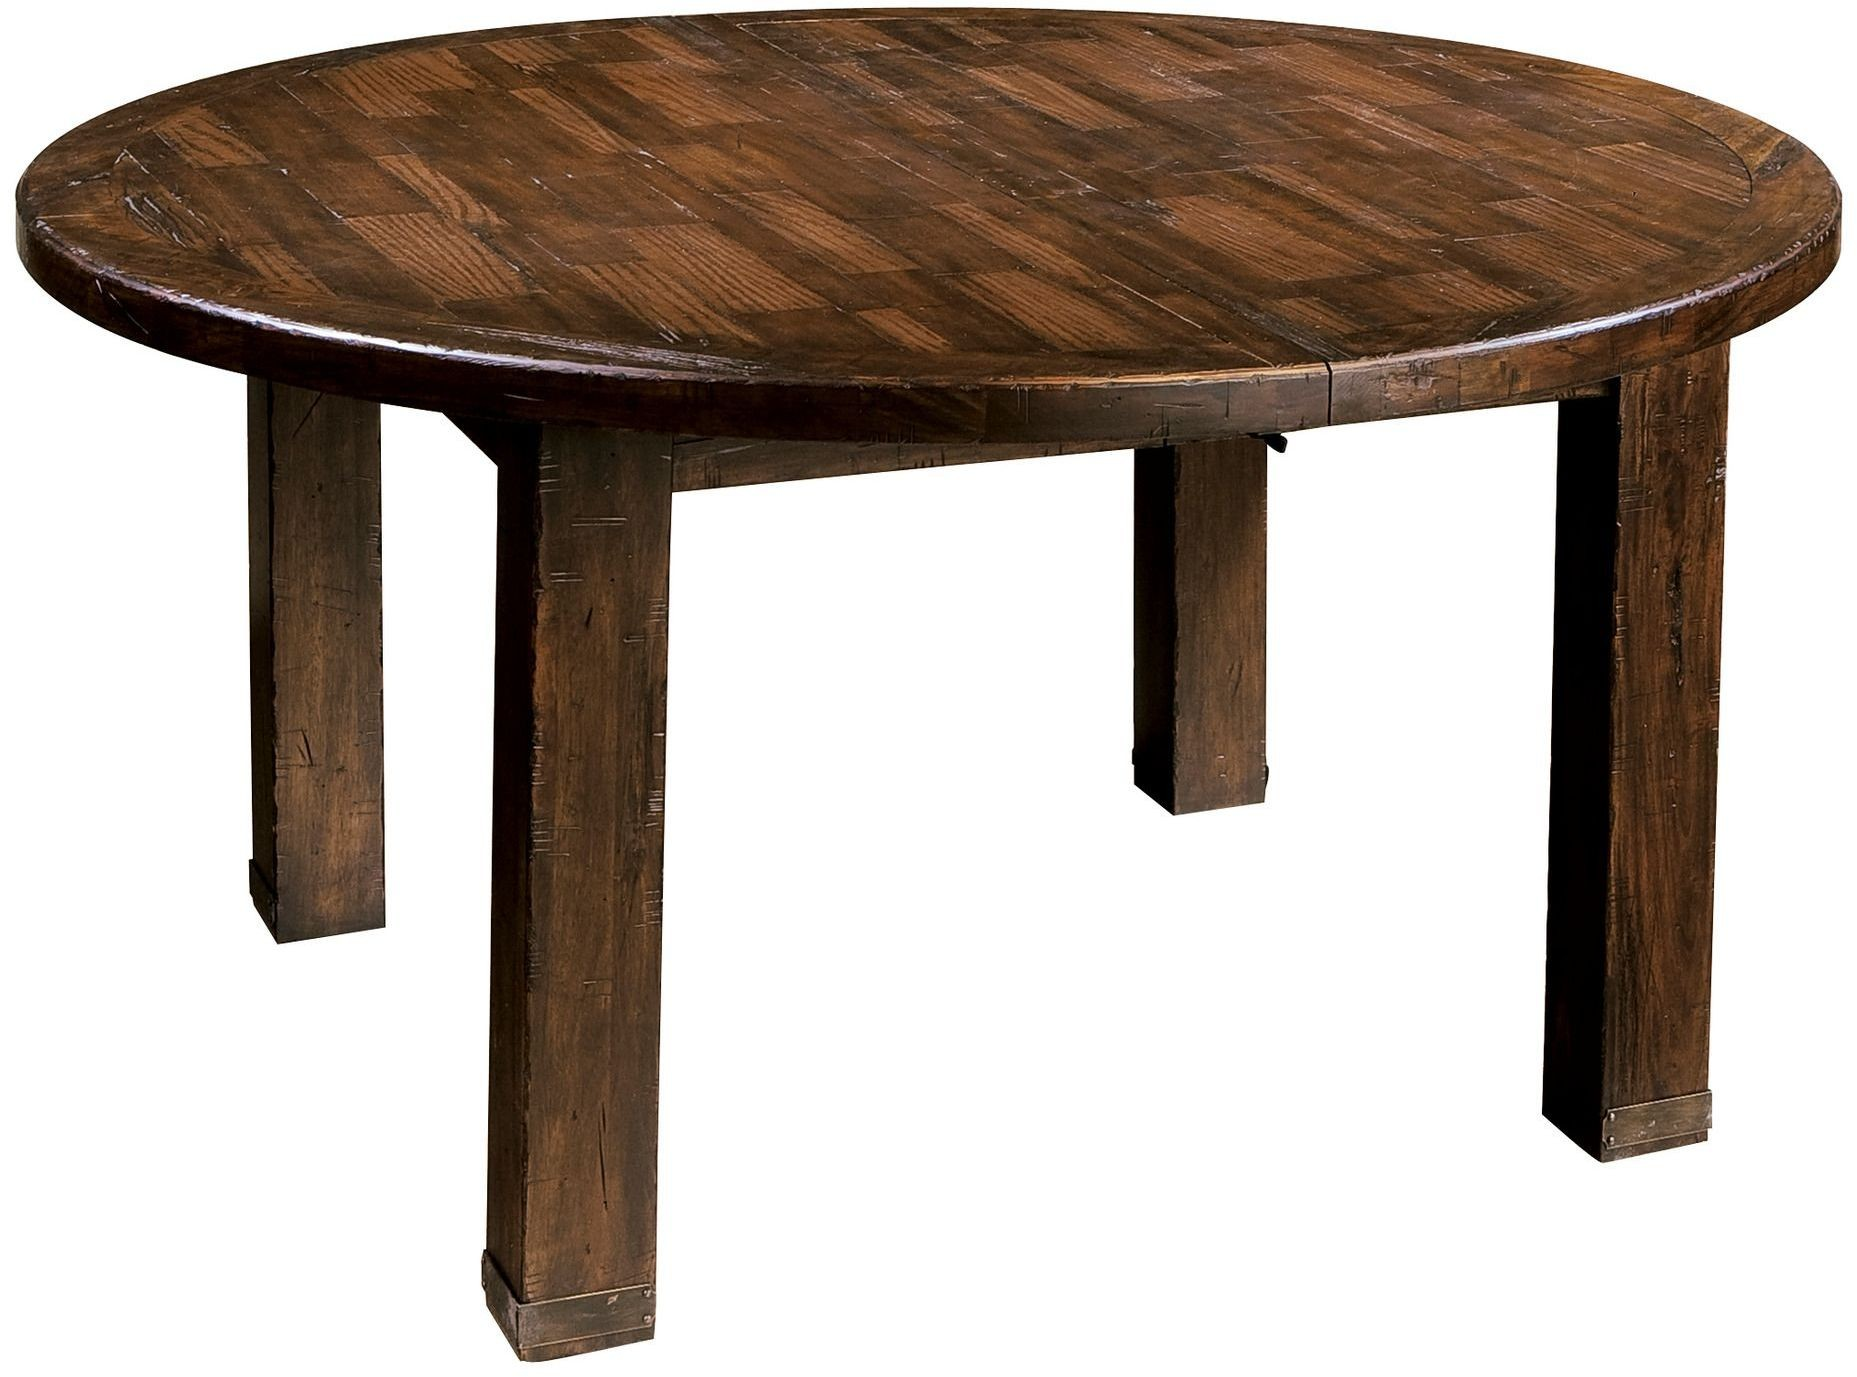 Dining Tables Rustic: Harbor Springs Rustic Hardwood Extendable Round Dining Table From Hekman Furniture